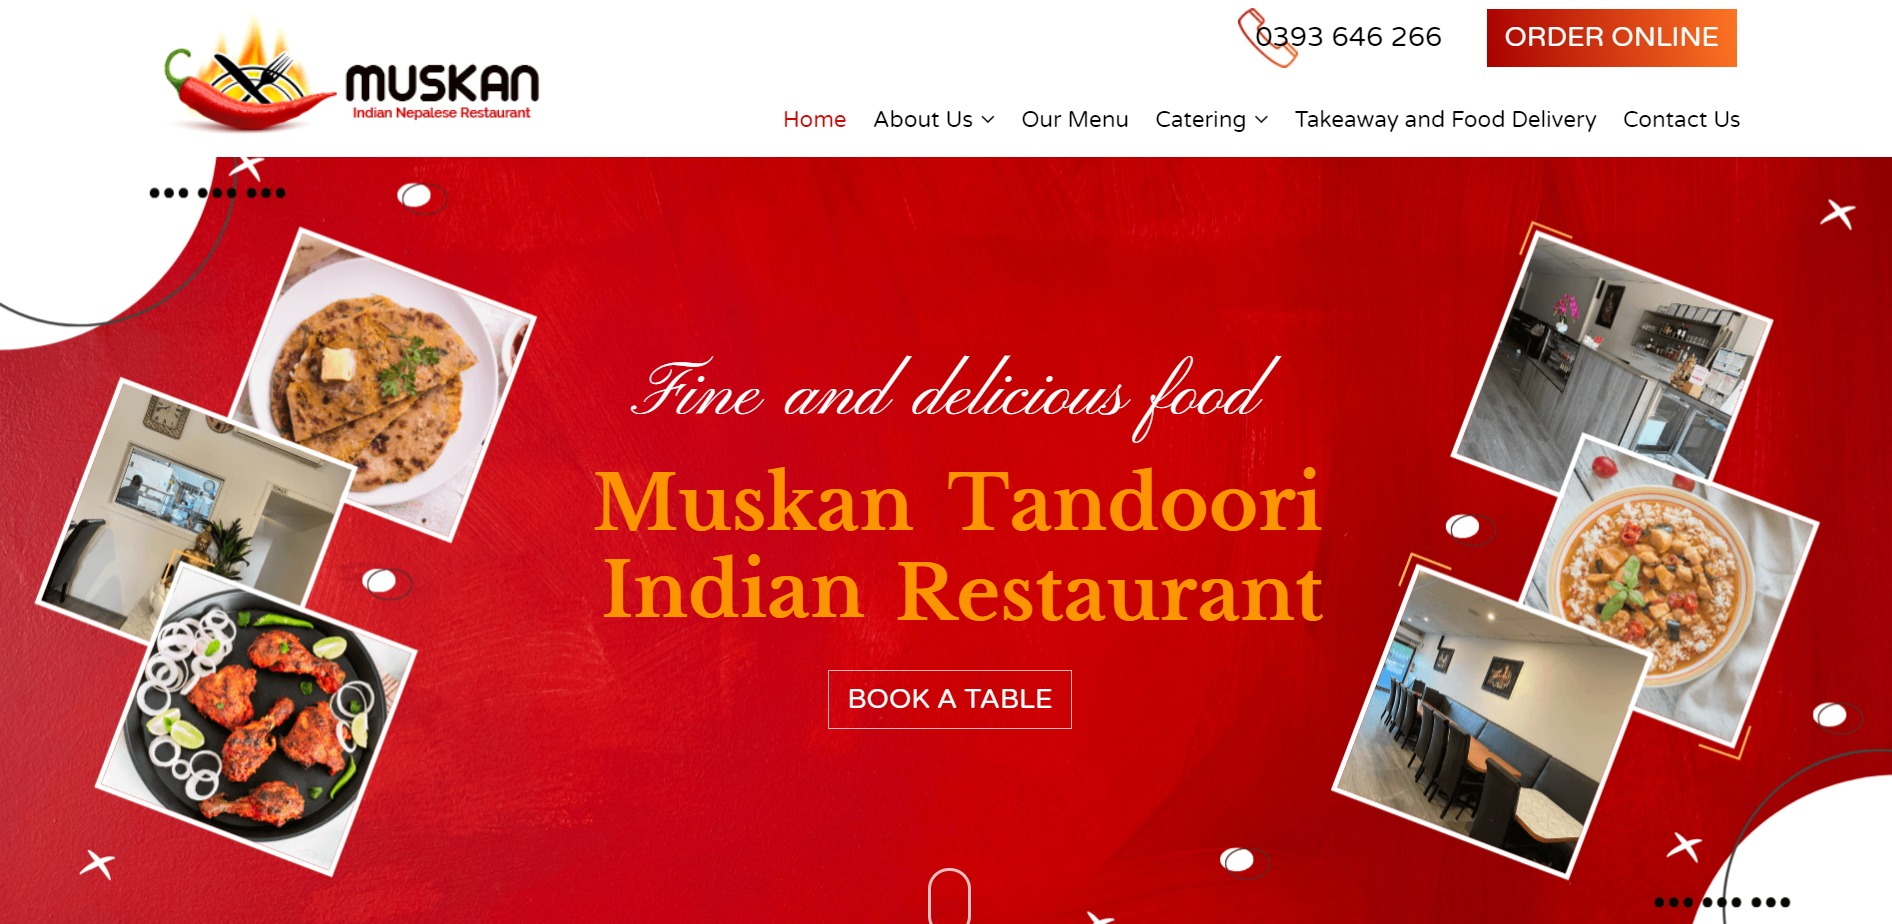 Muskan Indian Nepalese Restaurant